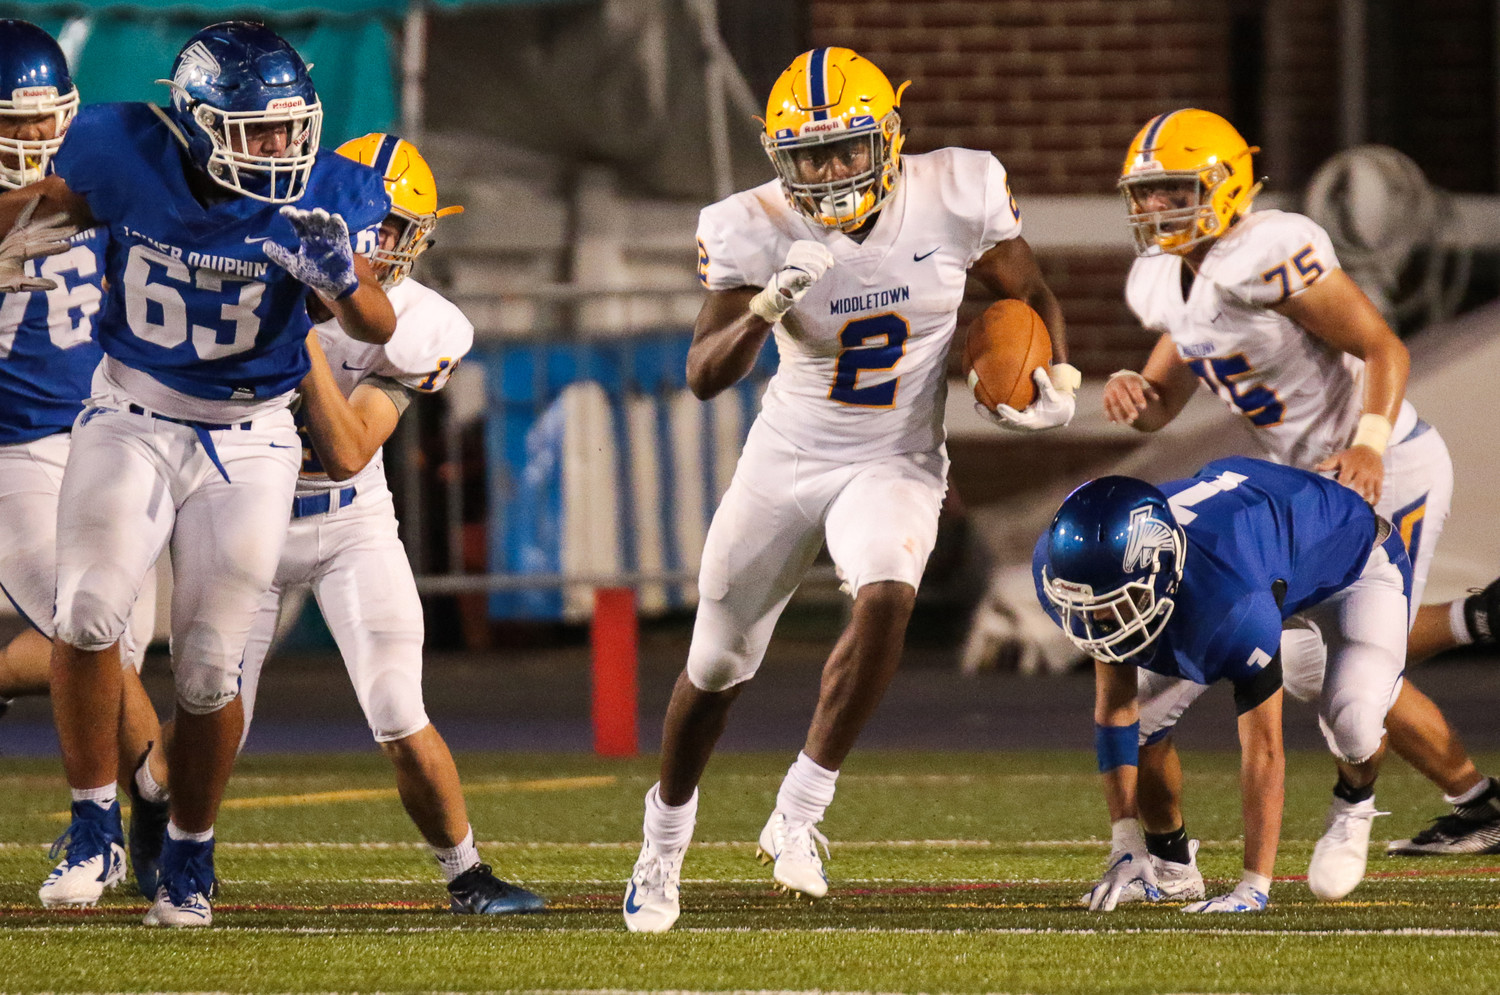 Blue Raider running back Richie Sykes busts through the Lower Dauphin defensive line.